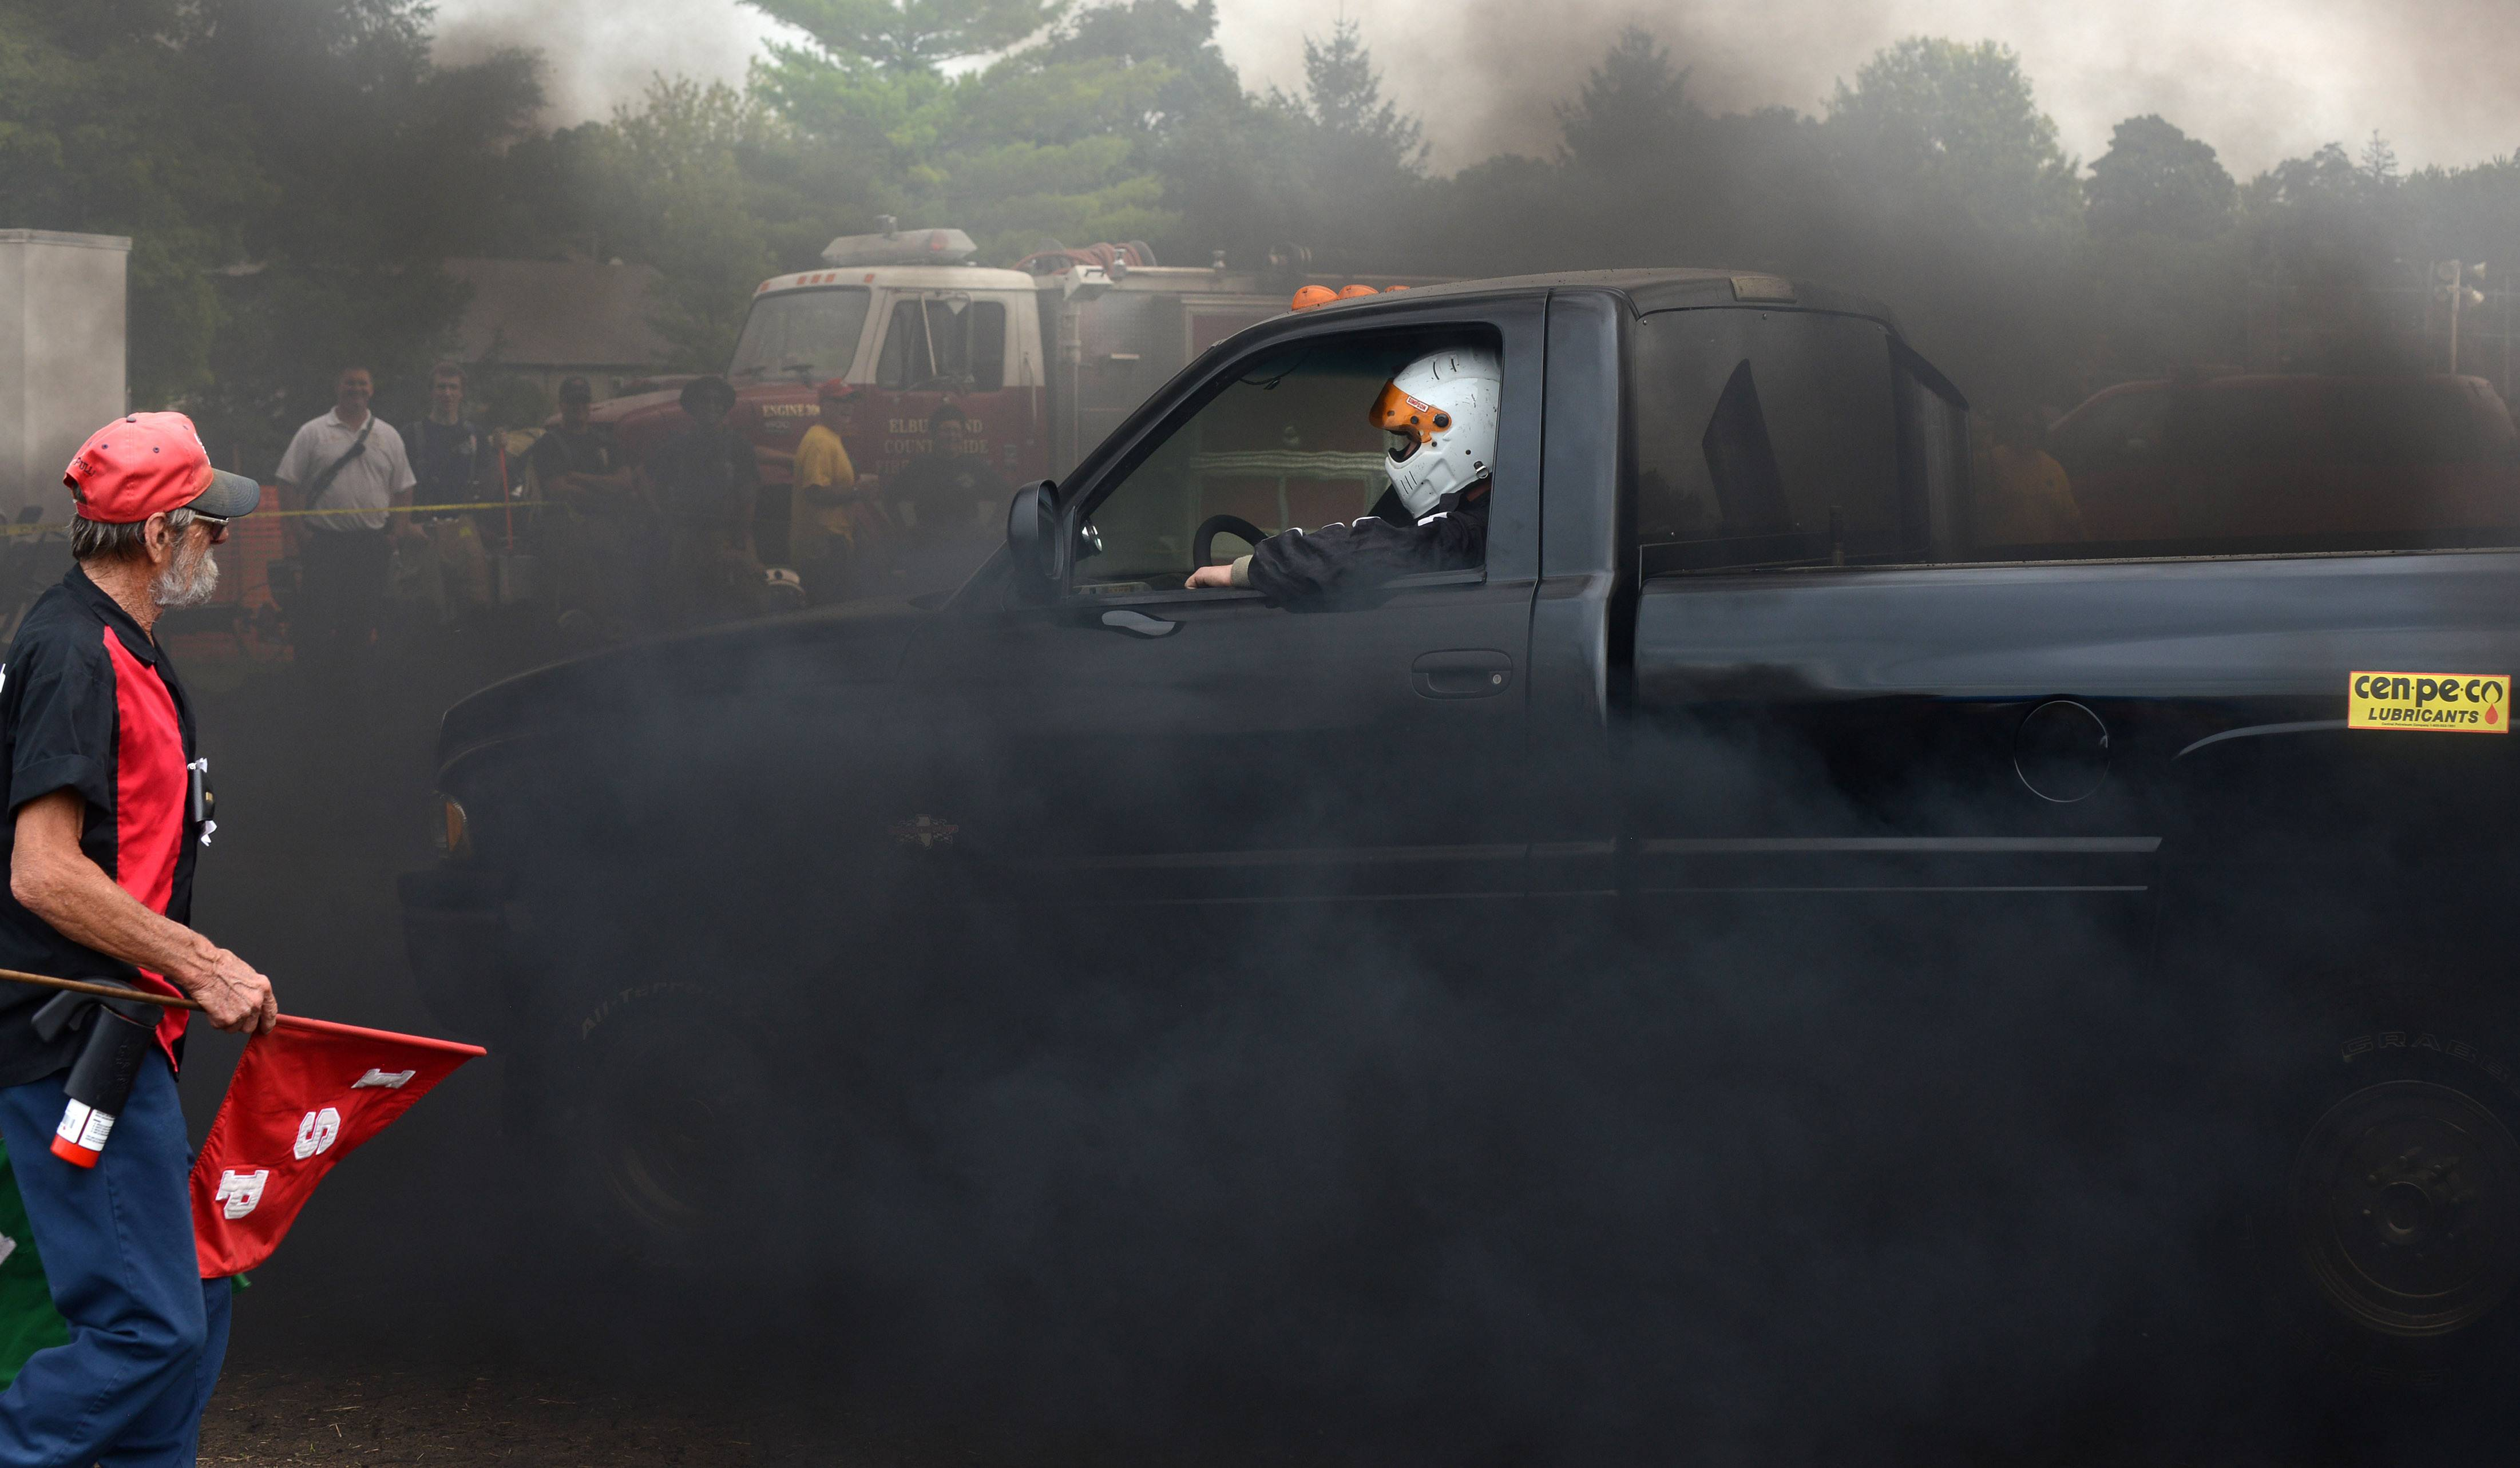 Diesel smoke clears after Chris Lemke of Sheridan finishes competing in the 6,500 AS 4 x 4 class with his '95 Dodge truck at Elburn Days Saturday.